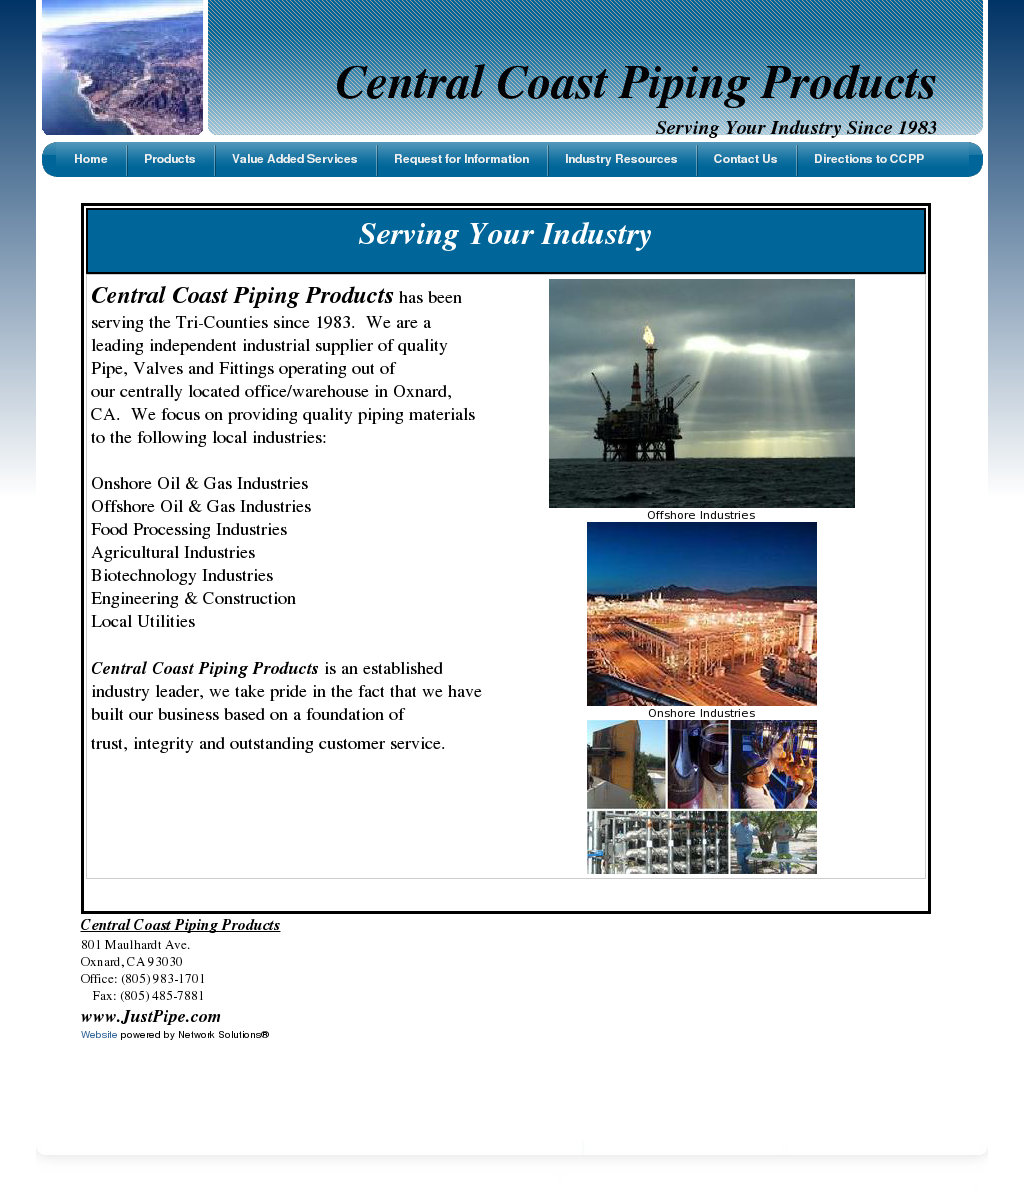 Central Coast Piping Products Competitors, Revenue and